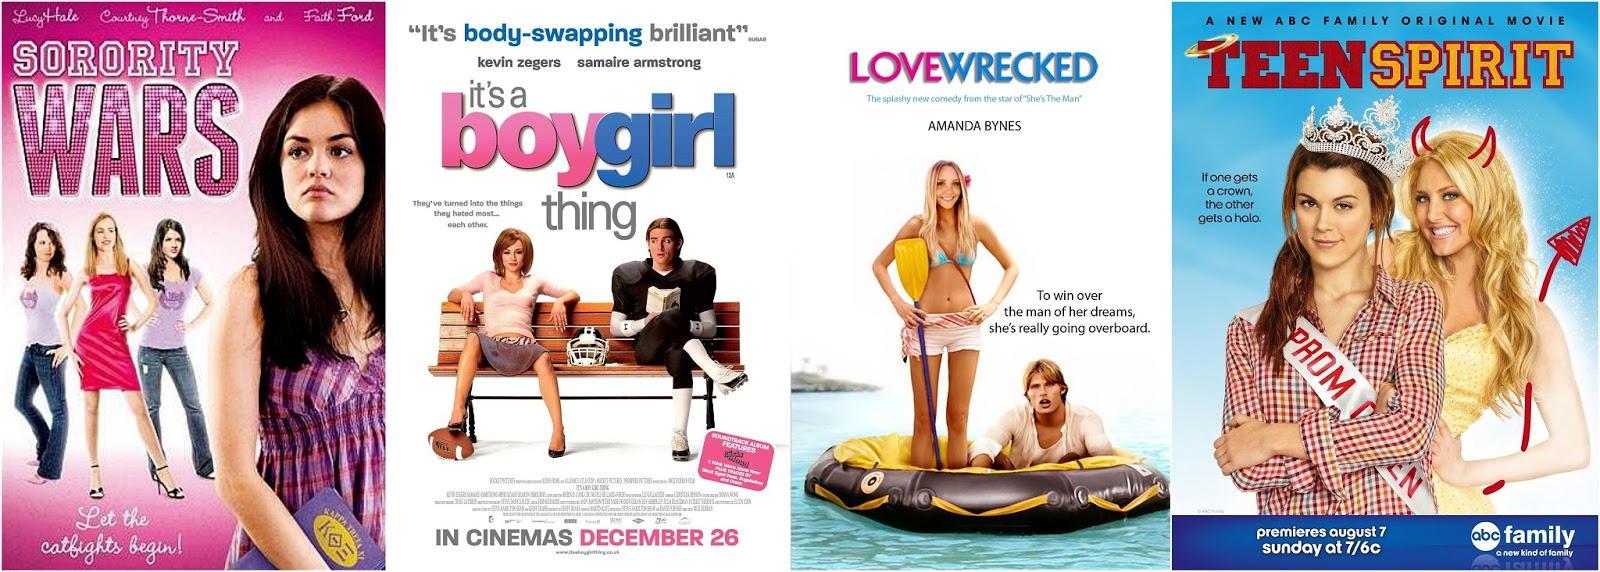 Hot Teen Movies Flicks With 82